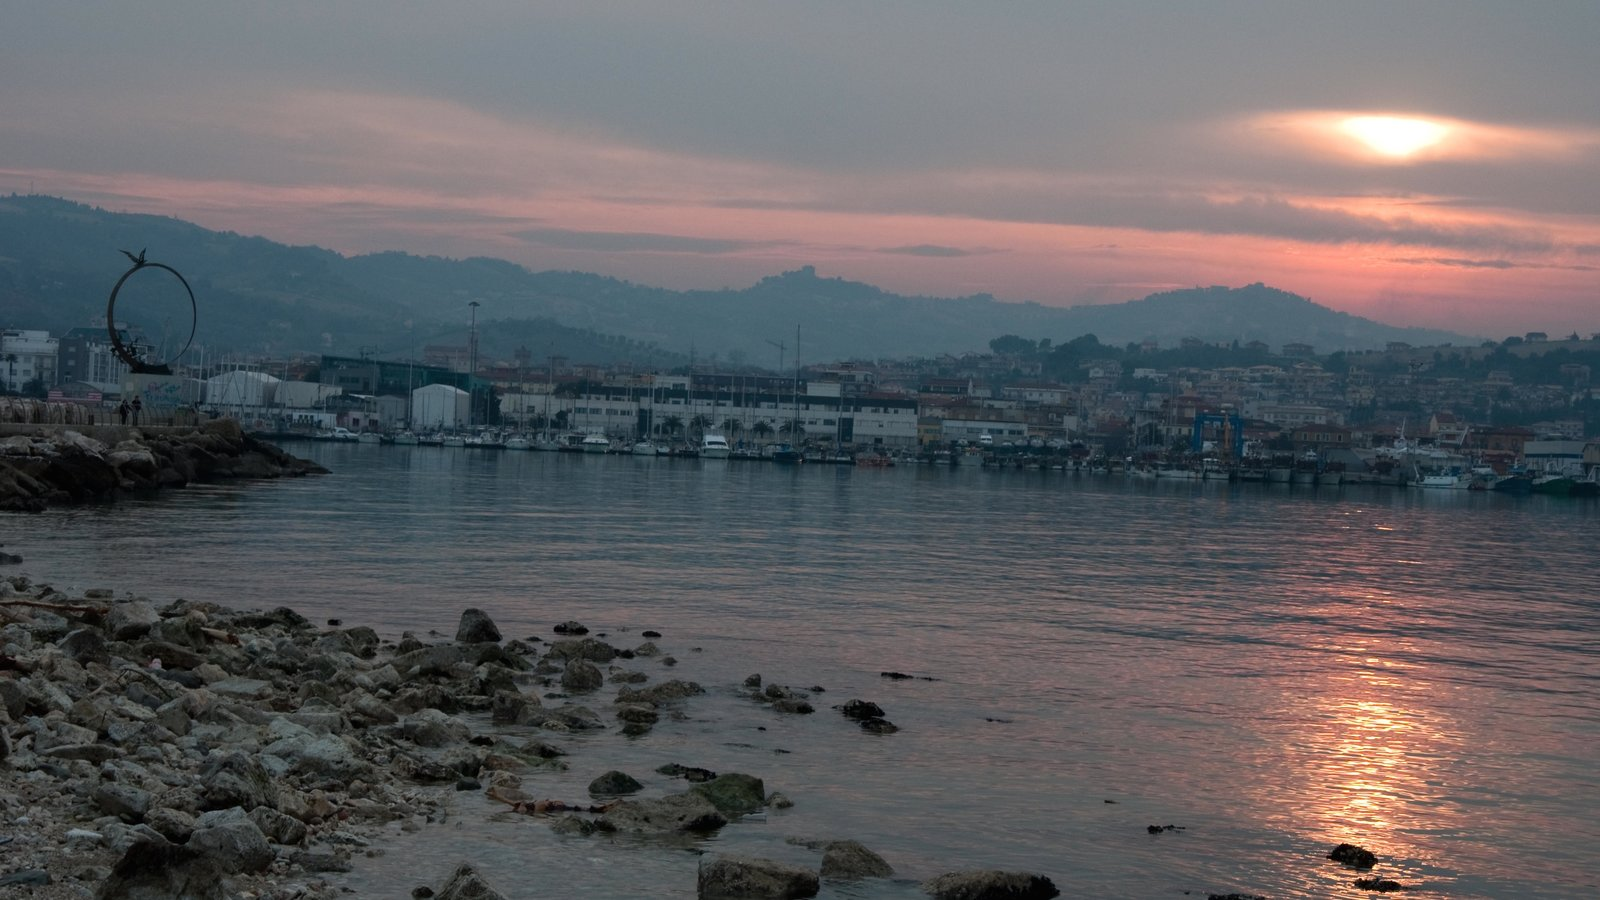 San Benedetto del Tronto showing a coastal town, a sunset and general coastal views